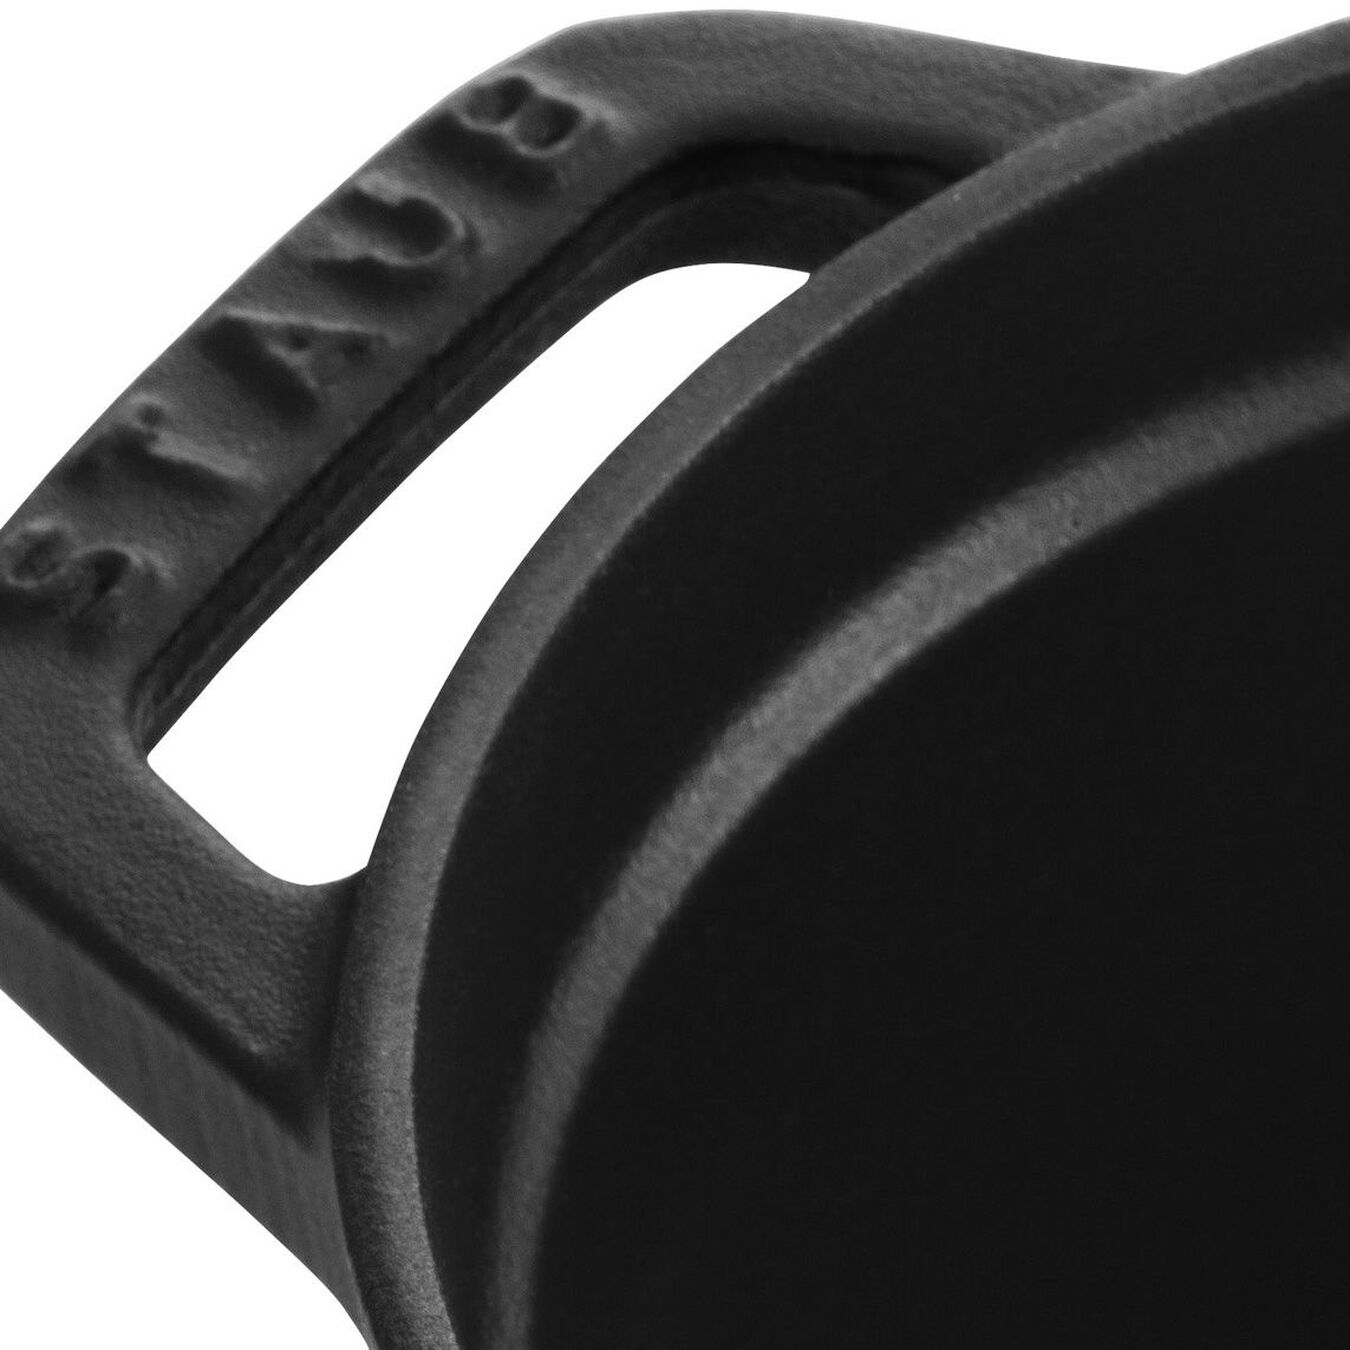 1 l Cast iron oval Faitout, Black,,large 4